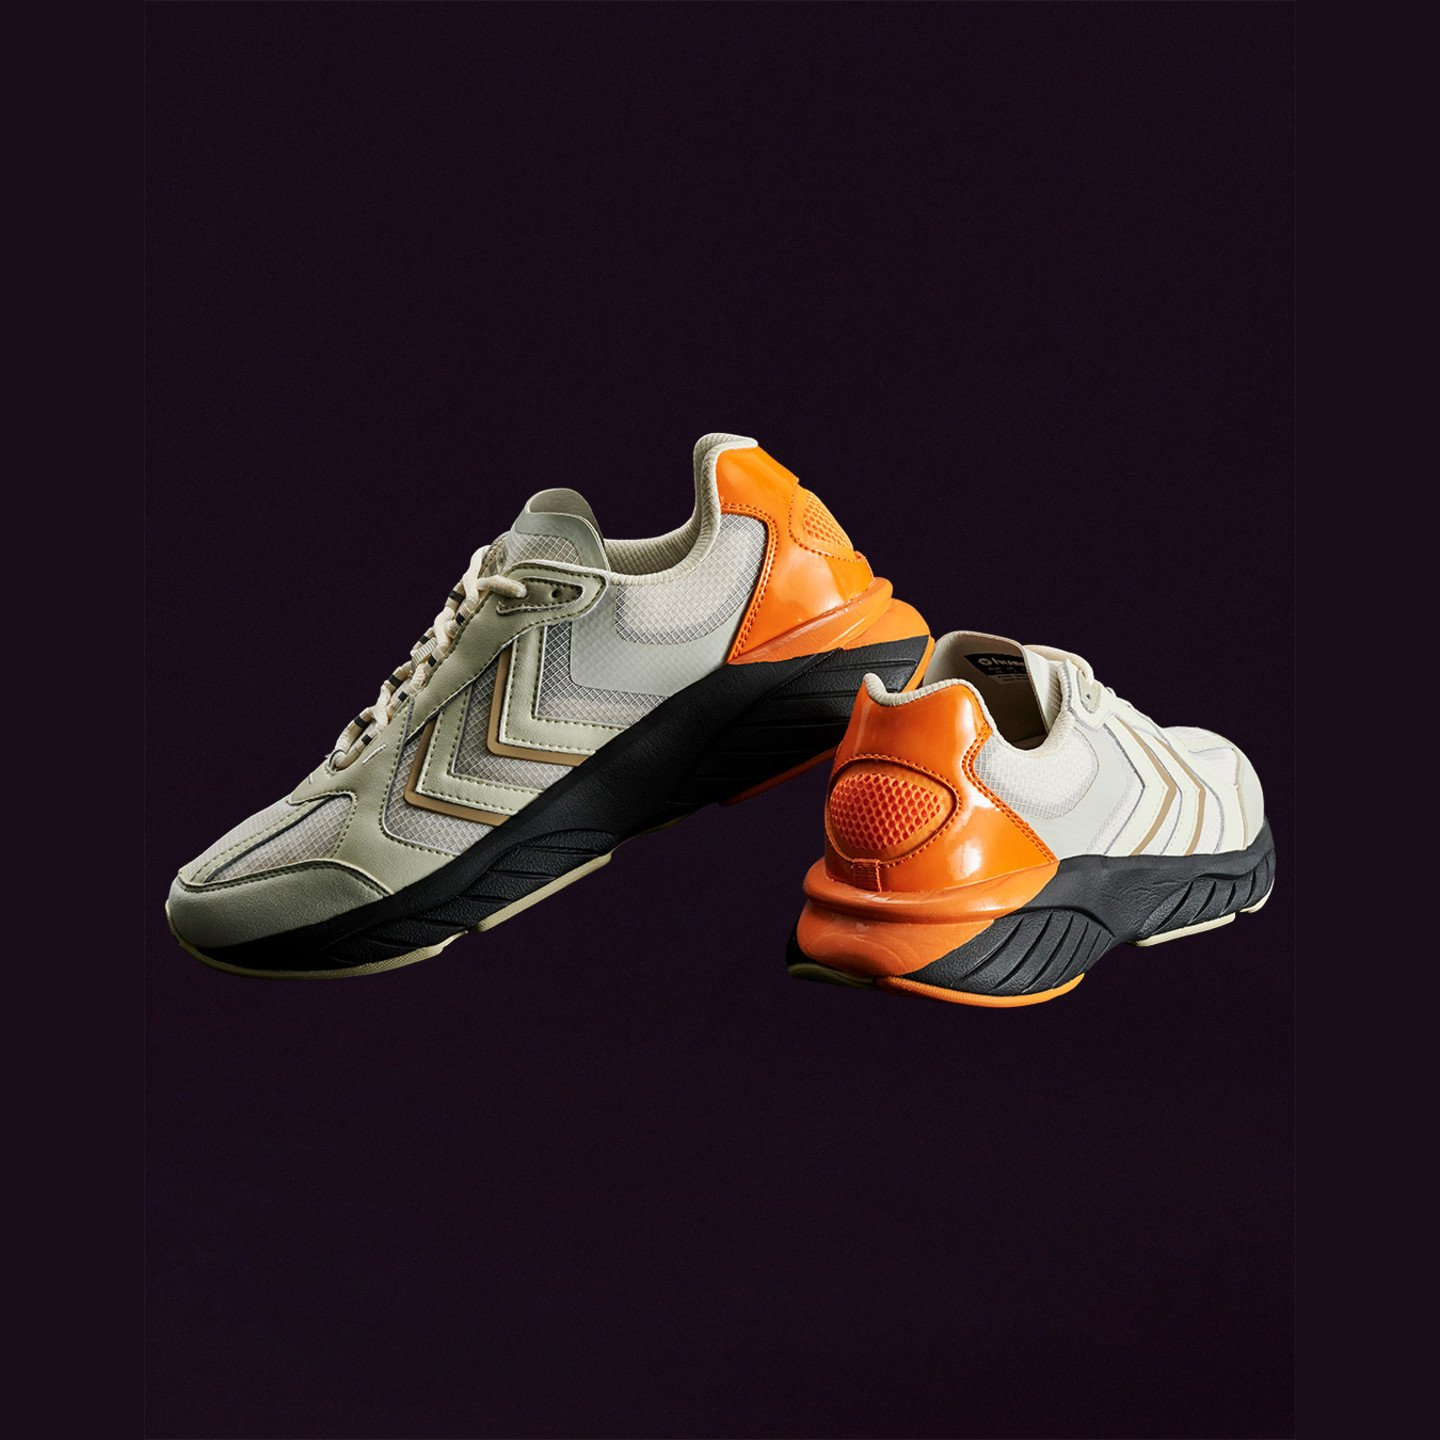 Hummel Reach LX 6000 x Astrid Andersen Bone White / Orange / Black 210981-9804